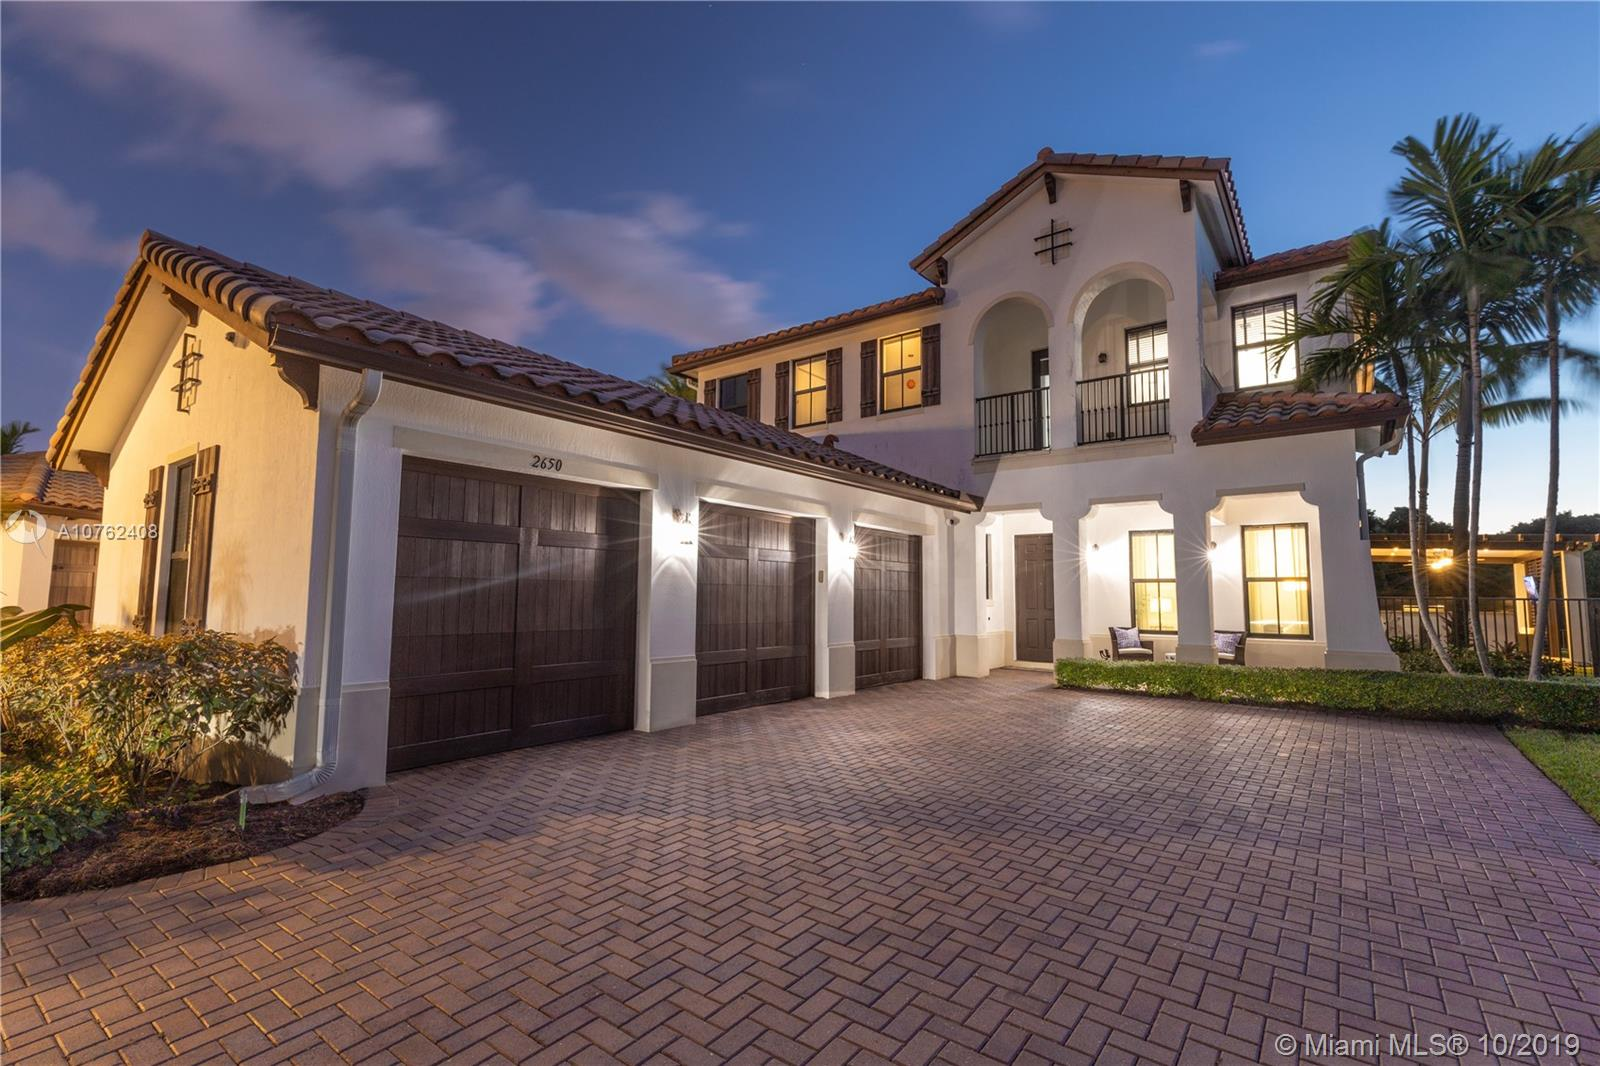 """TSFT is proud to present the best-in-class Tortuga model home located in sought-after Monterra at Cooper City. Situated on a quiet cul-de-sac, this home boasts an oversized lot with tropical privacy landscaping, custom swimming pool with built-in speaker, 180° sunset views by the lake, and a brand-new summer kitchen entertainment space with TV & surround sound. Walk inside to a massive open concept kitchen and professionally designed living areas. Conveniently, one bedroom is located on the ground floor, with 2nd level featuring an oversized loft, and 3 large bedrooms, including a master with an ensuite, his-and-hers walk in closets, and a private balcony. This """"Smart Home"""" has a Universal Remote System operable from your mobile device with 7 different speaker zones + surveillance cameras."""